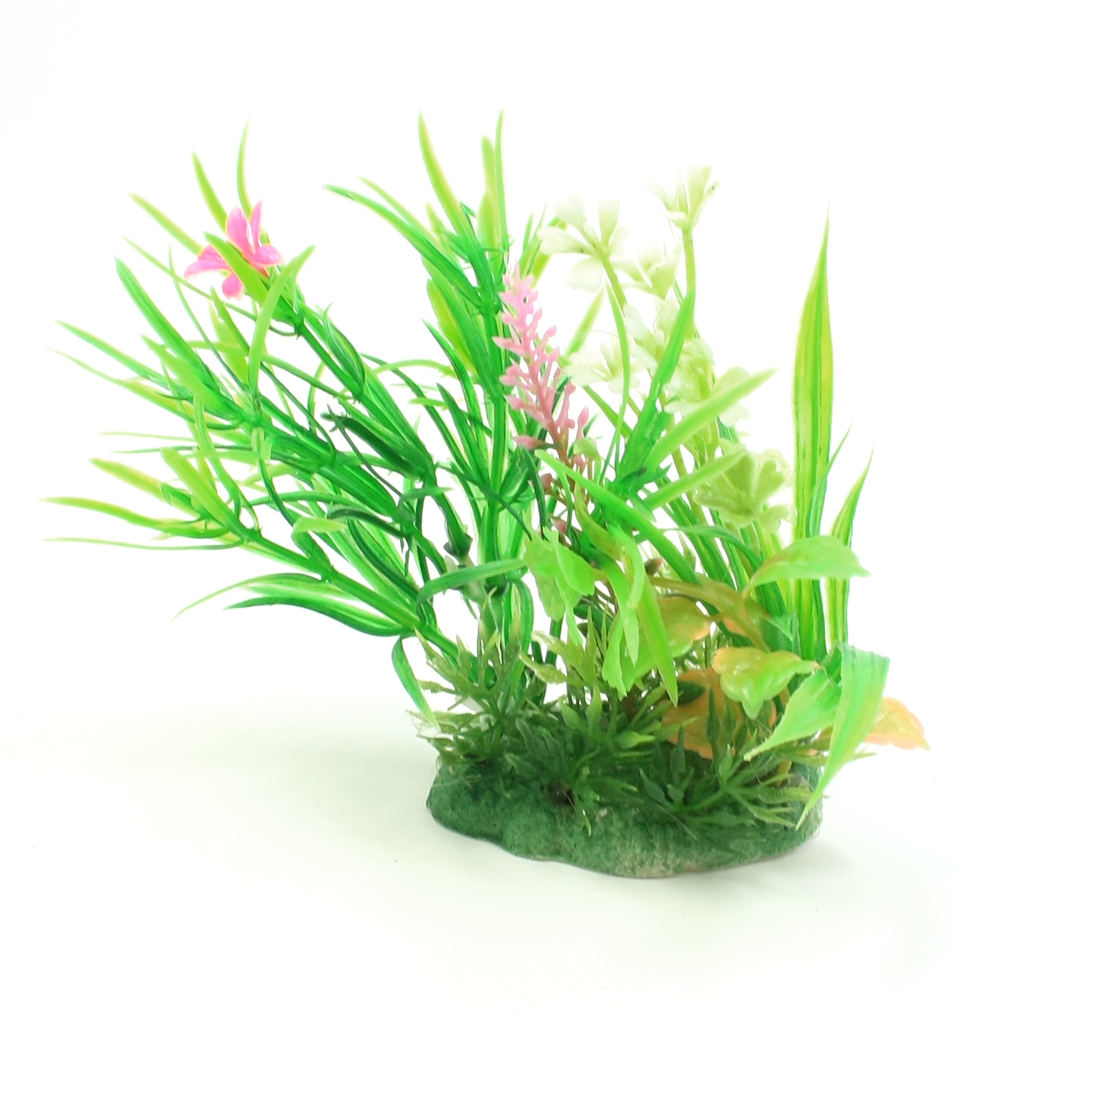 """5.1"""" Height Green Plastic Flowers Decor Aquatic Water Plant for Fish Tank"""